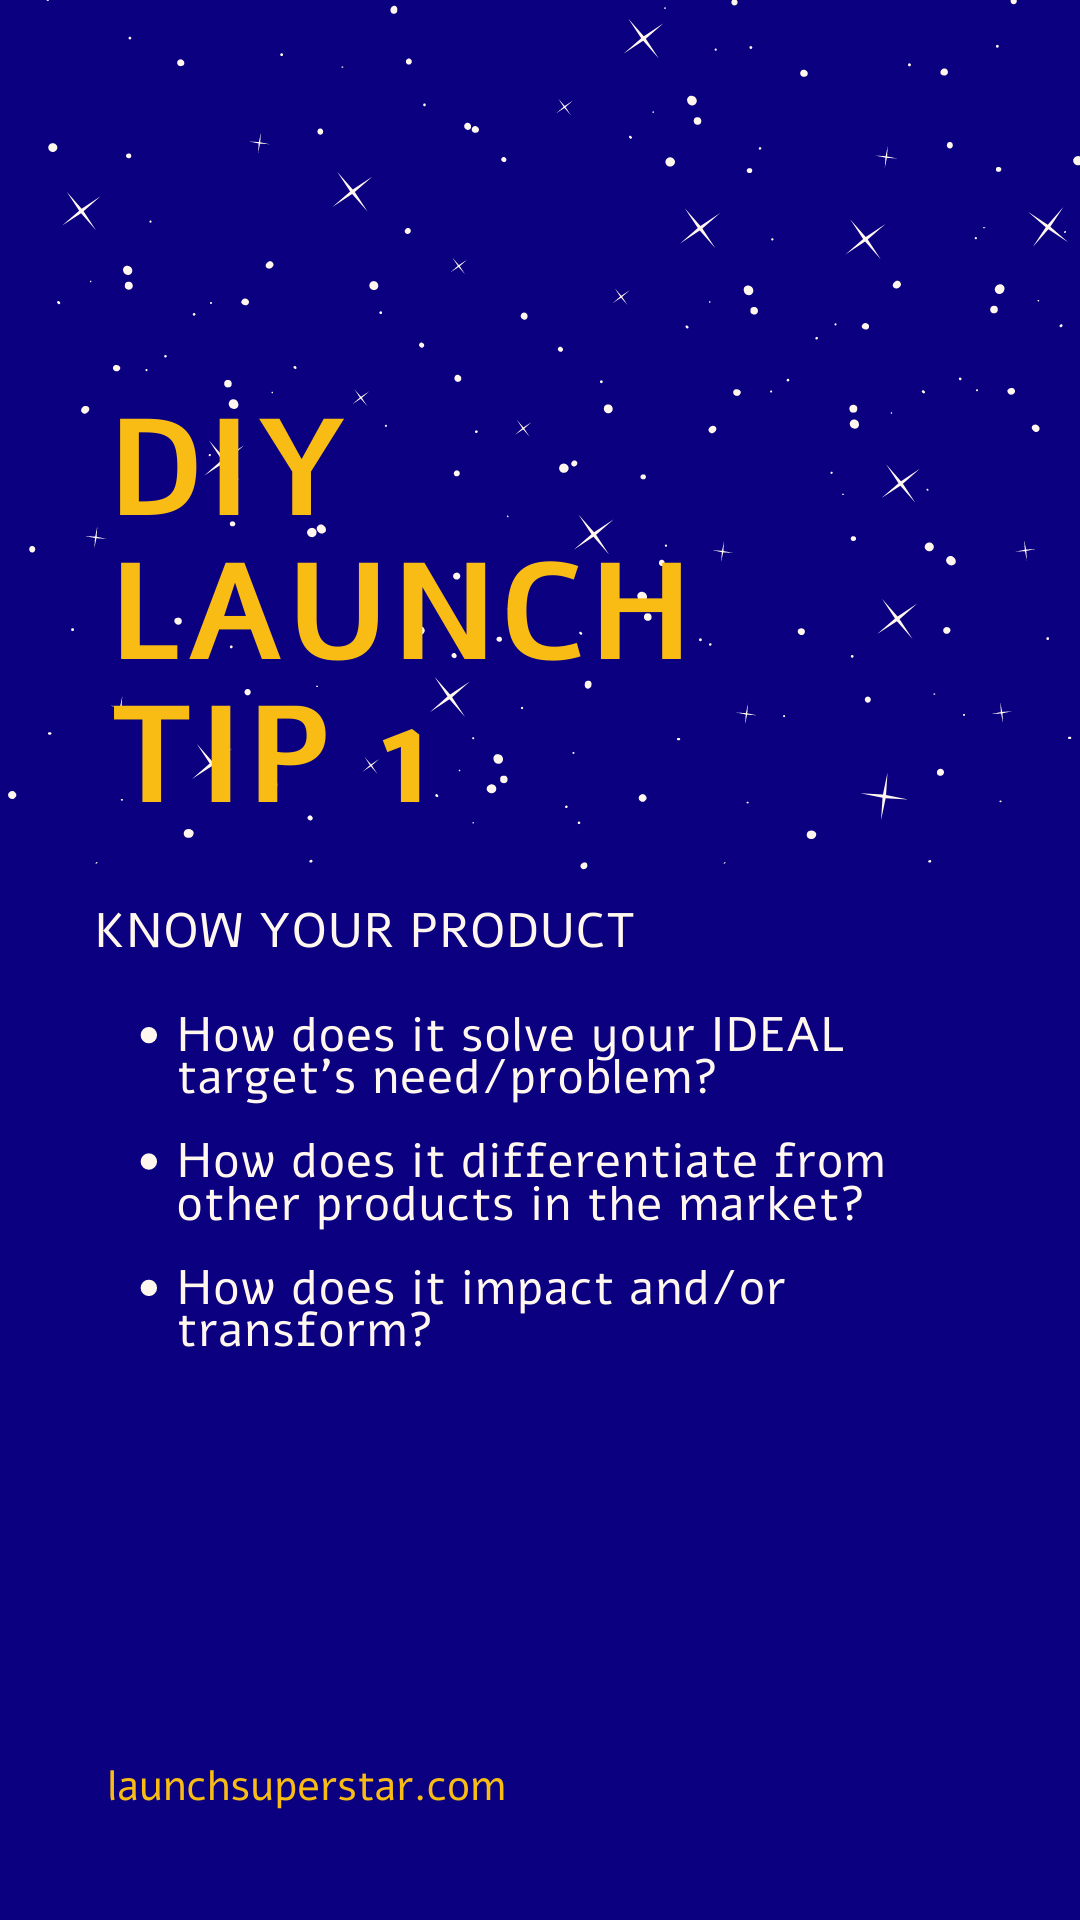 DIY Launch tip 1